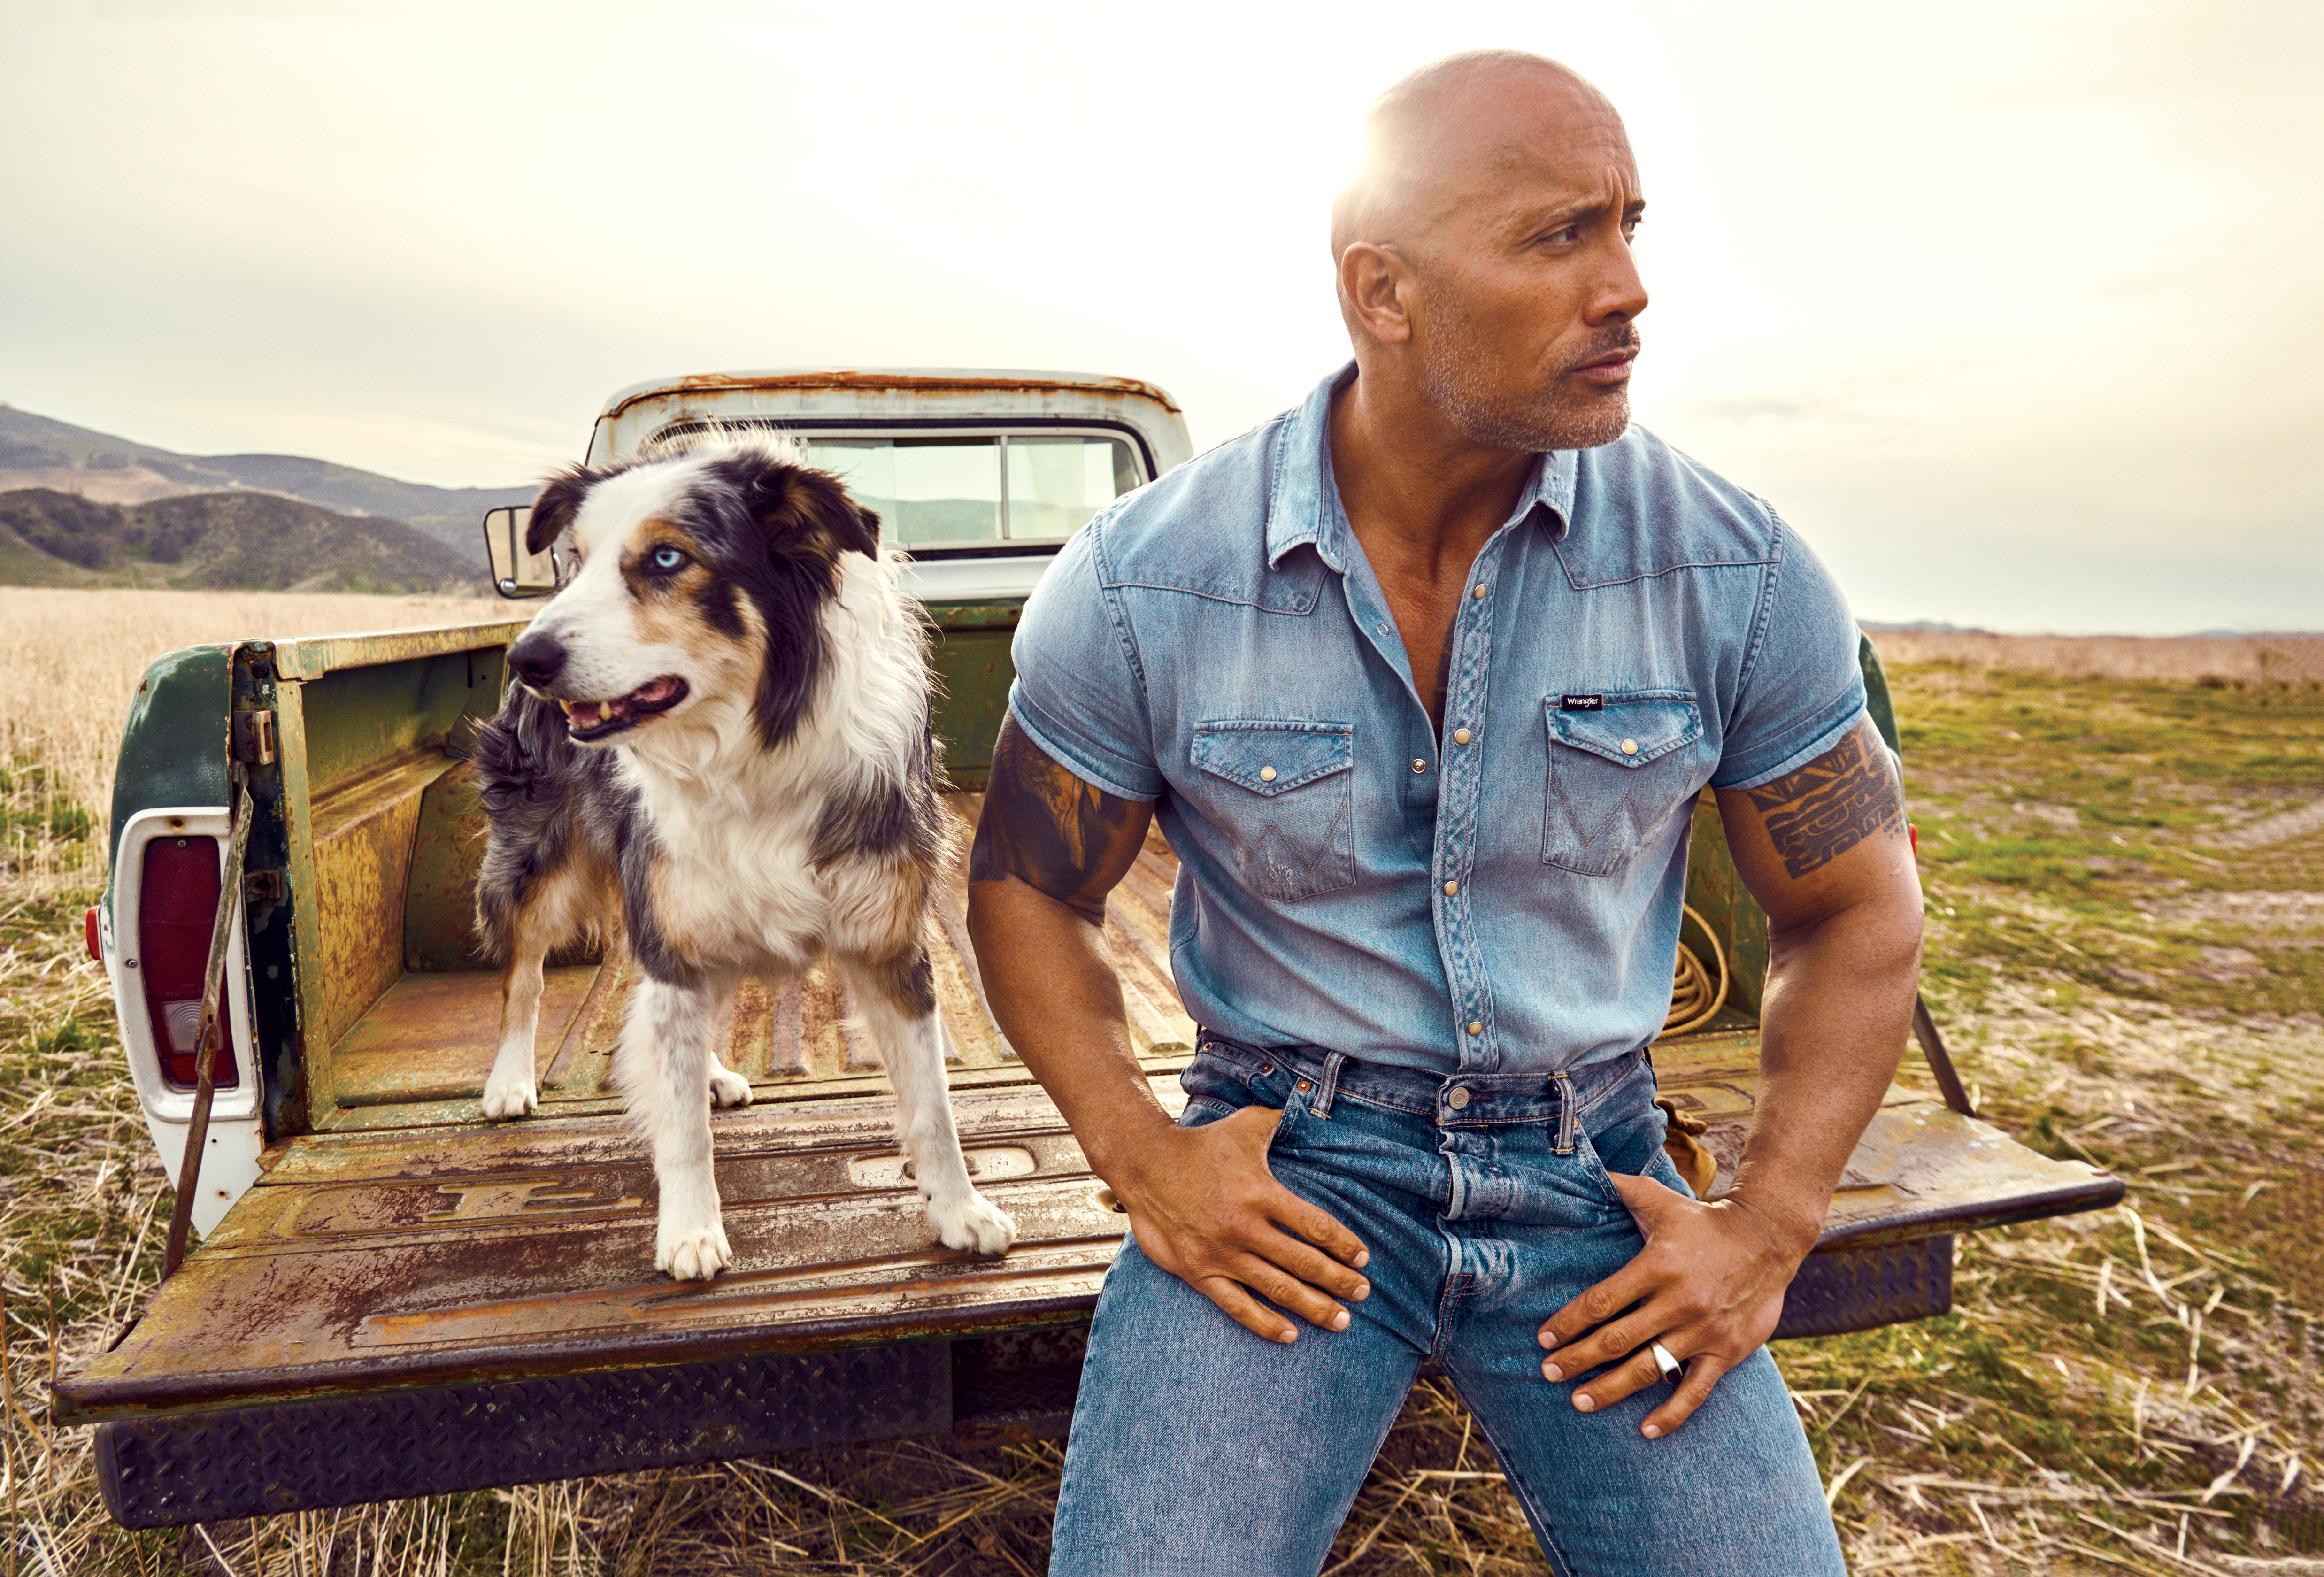 Dwayne Johnson The Pain And Passion That Fuel Rock Johnny 5 Short Circuit Tshirt Lead Over Love